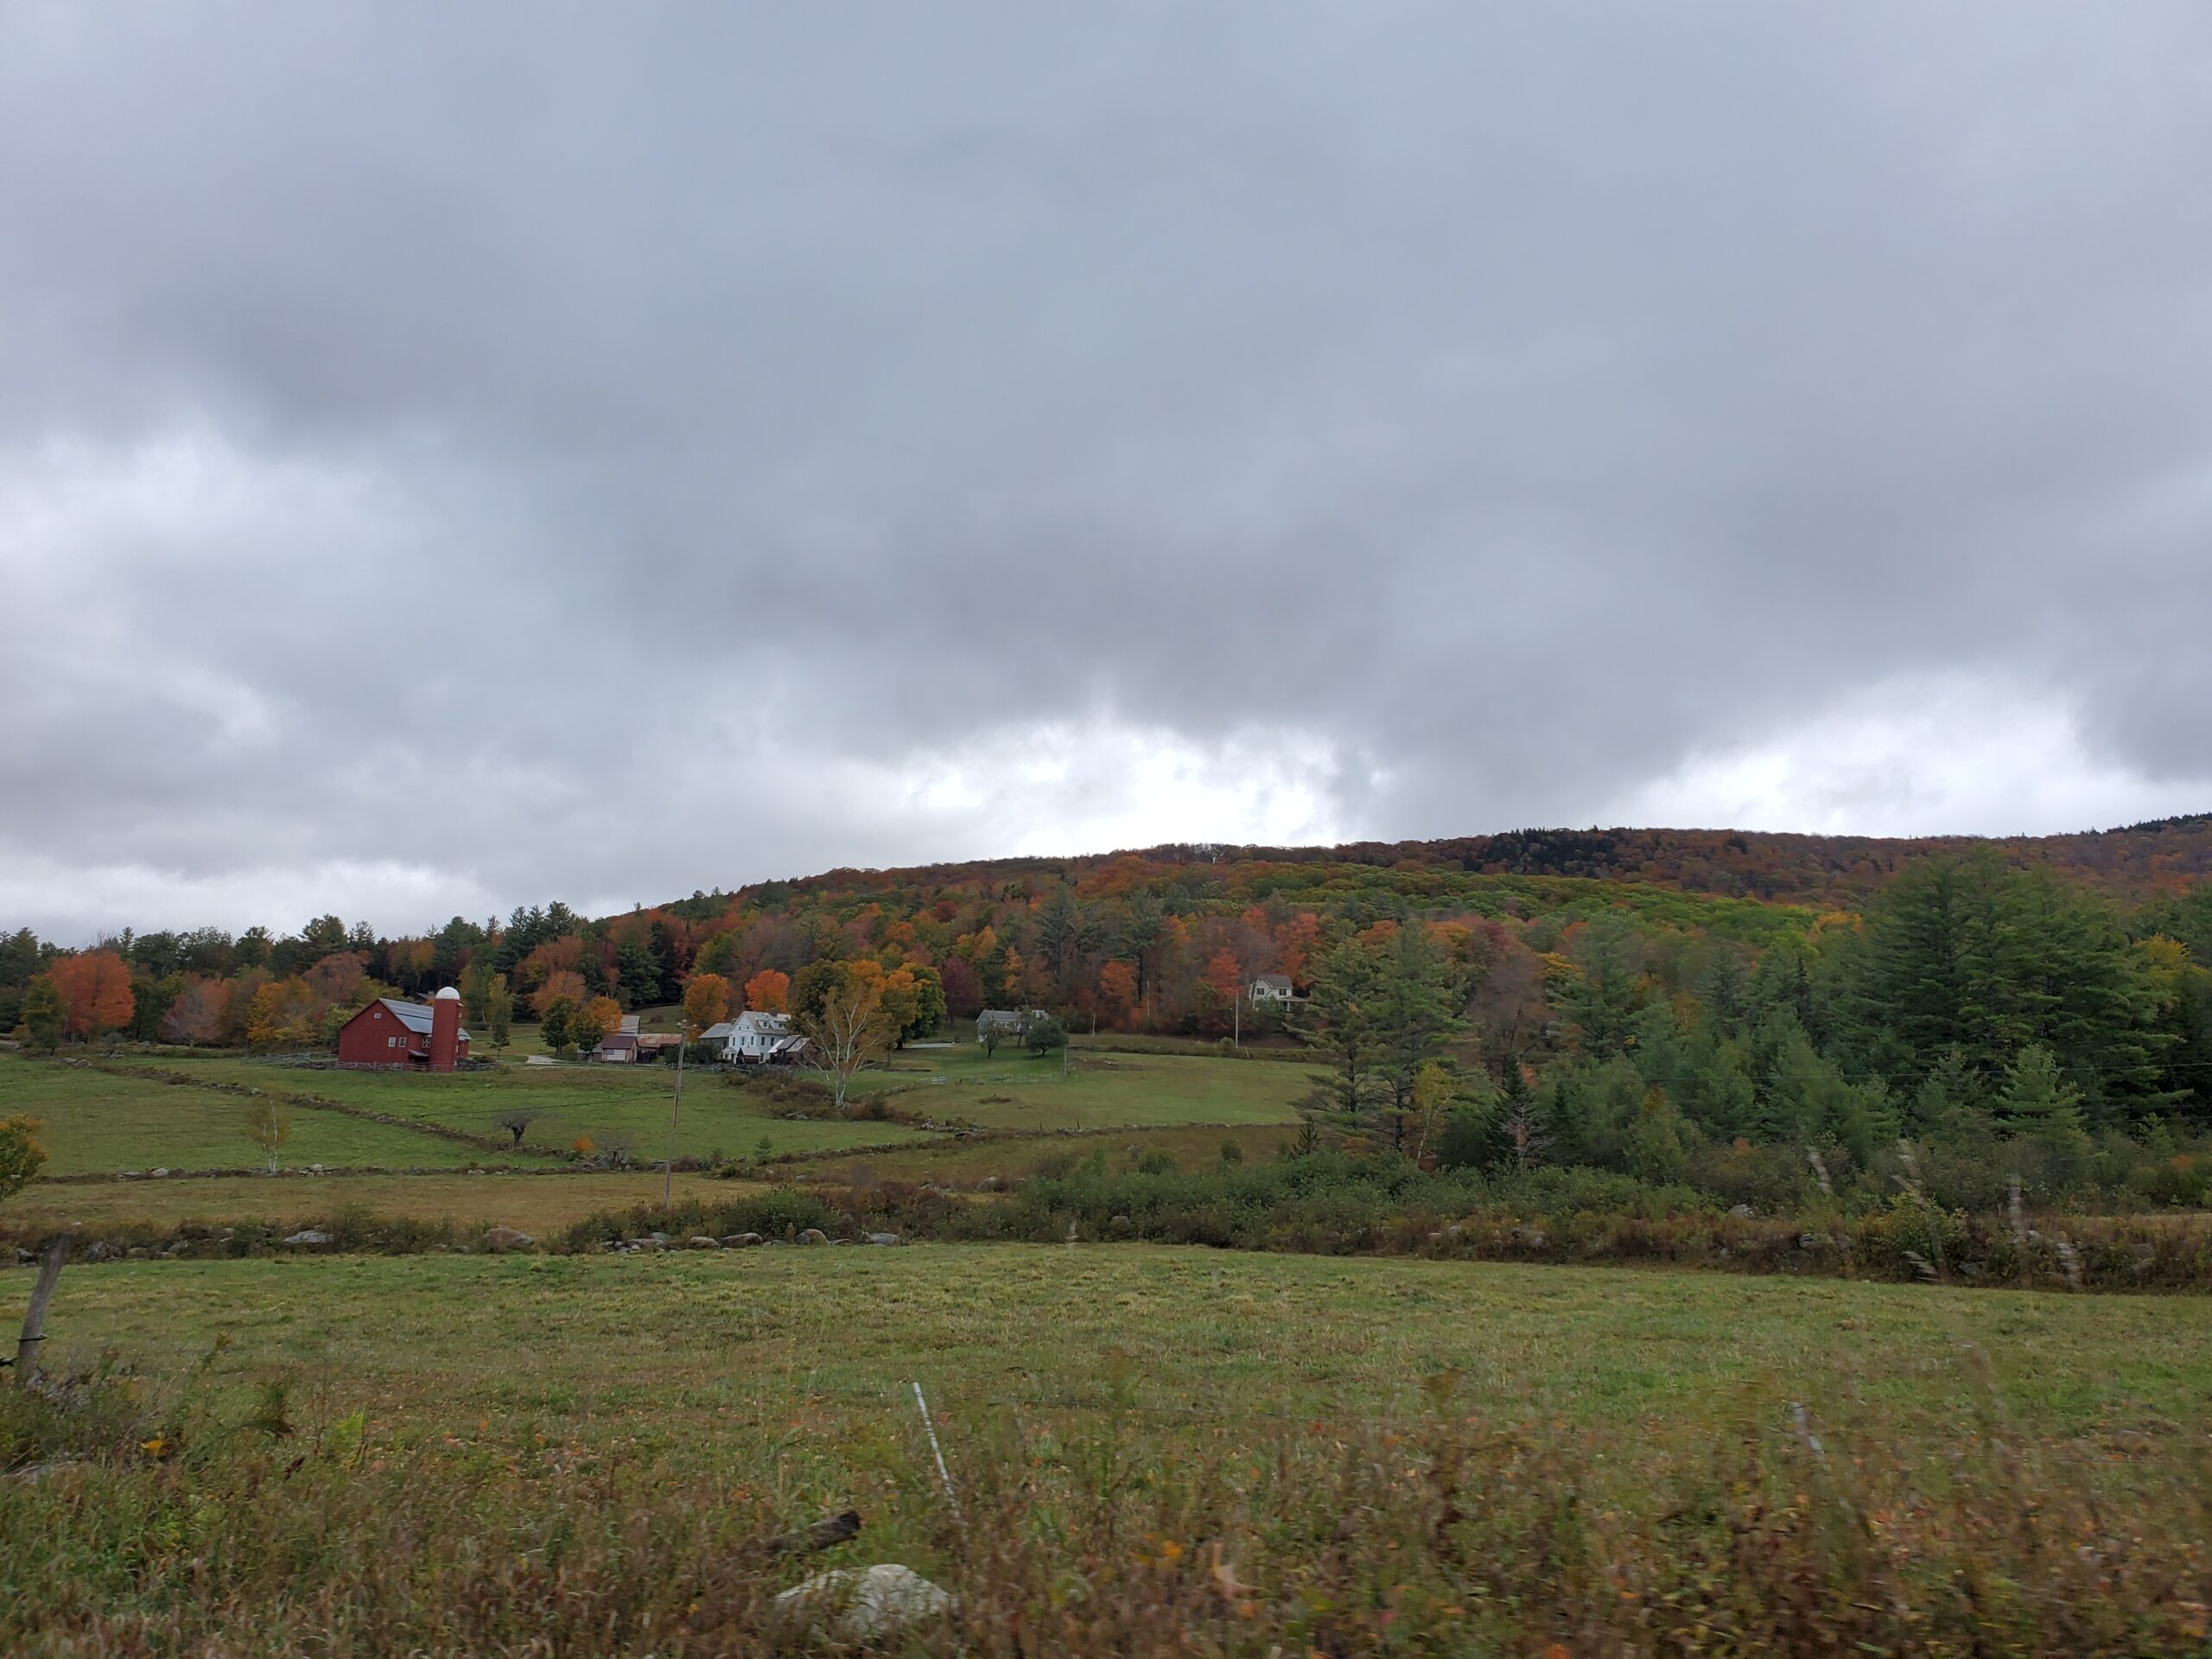 Foliage in Weston, VT - 2020-09-30